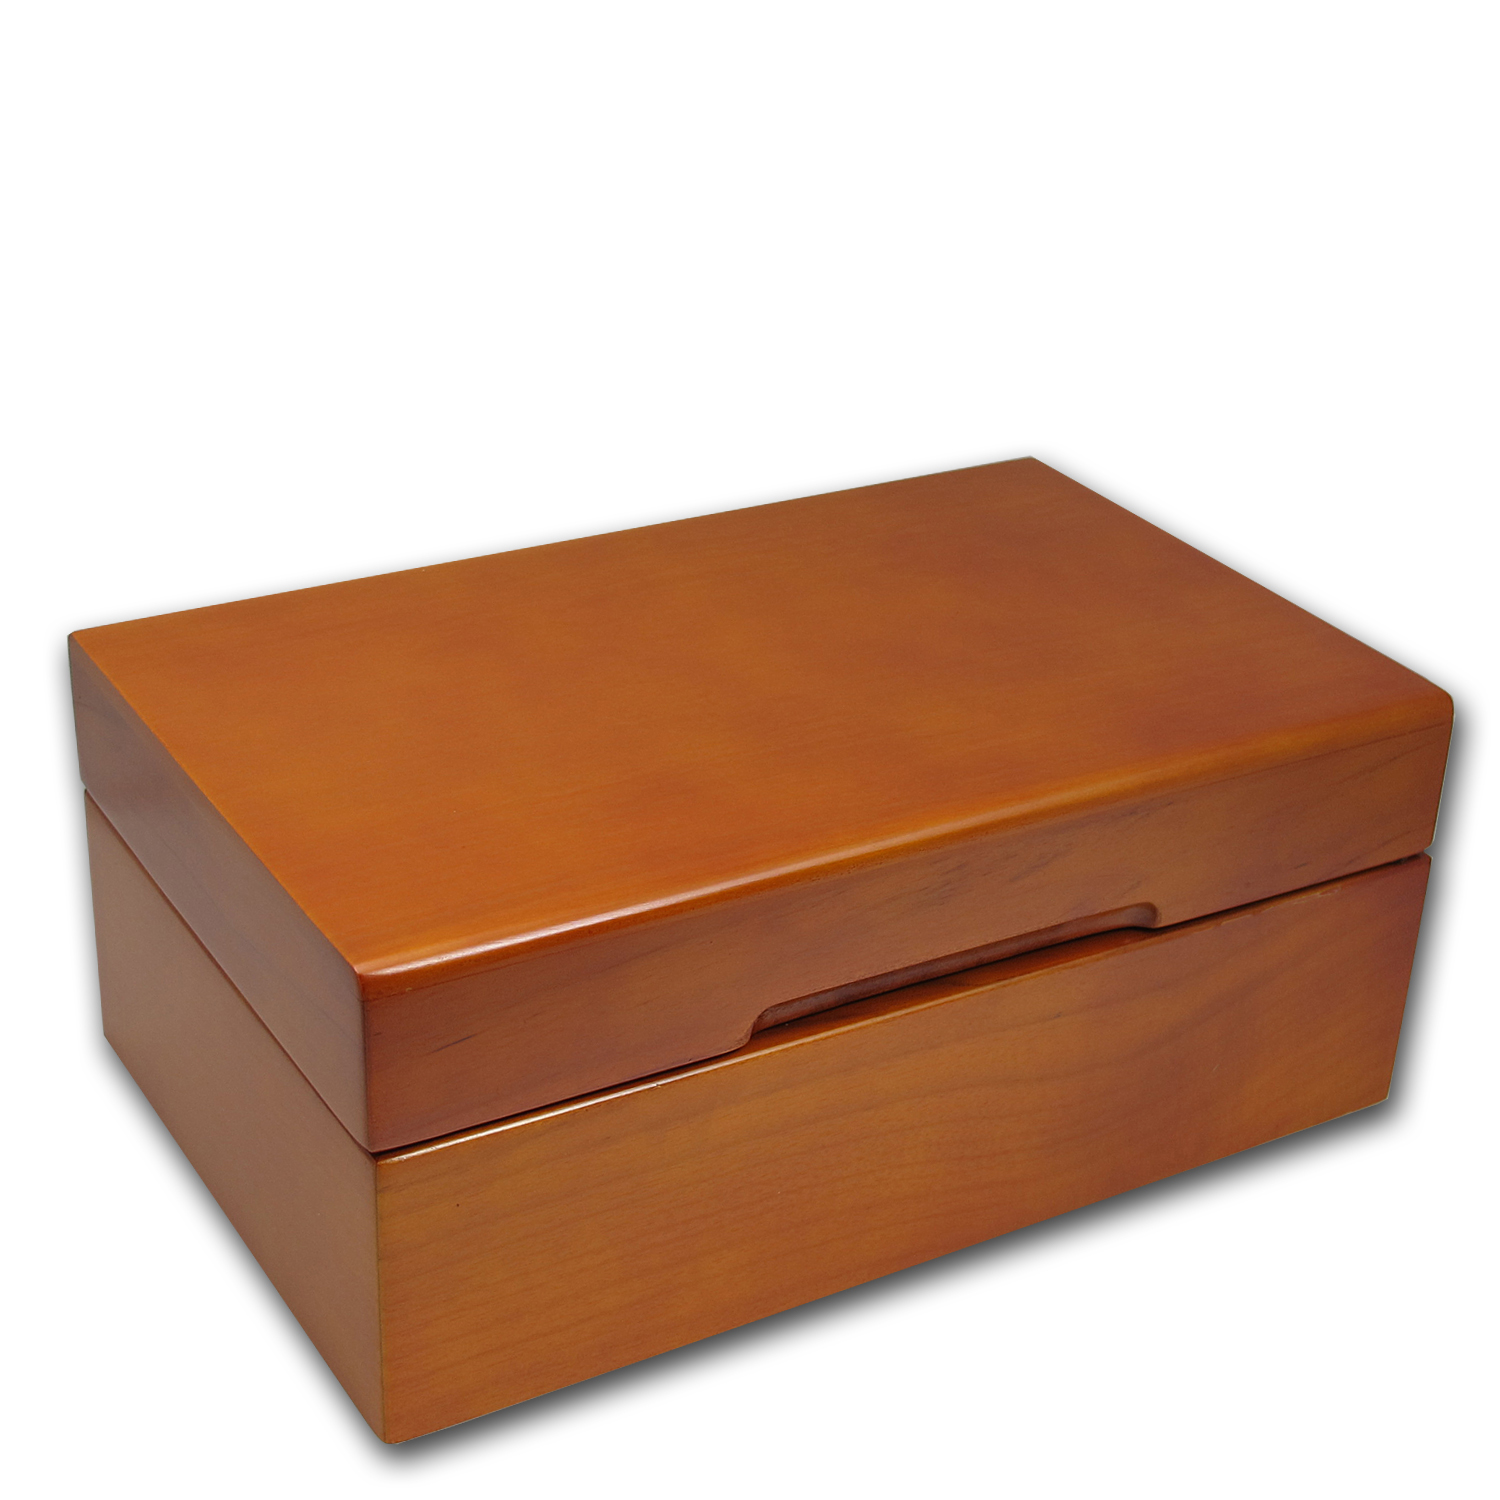 Hardwood Slab Gift Box - Thirty Slabs